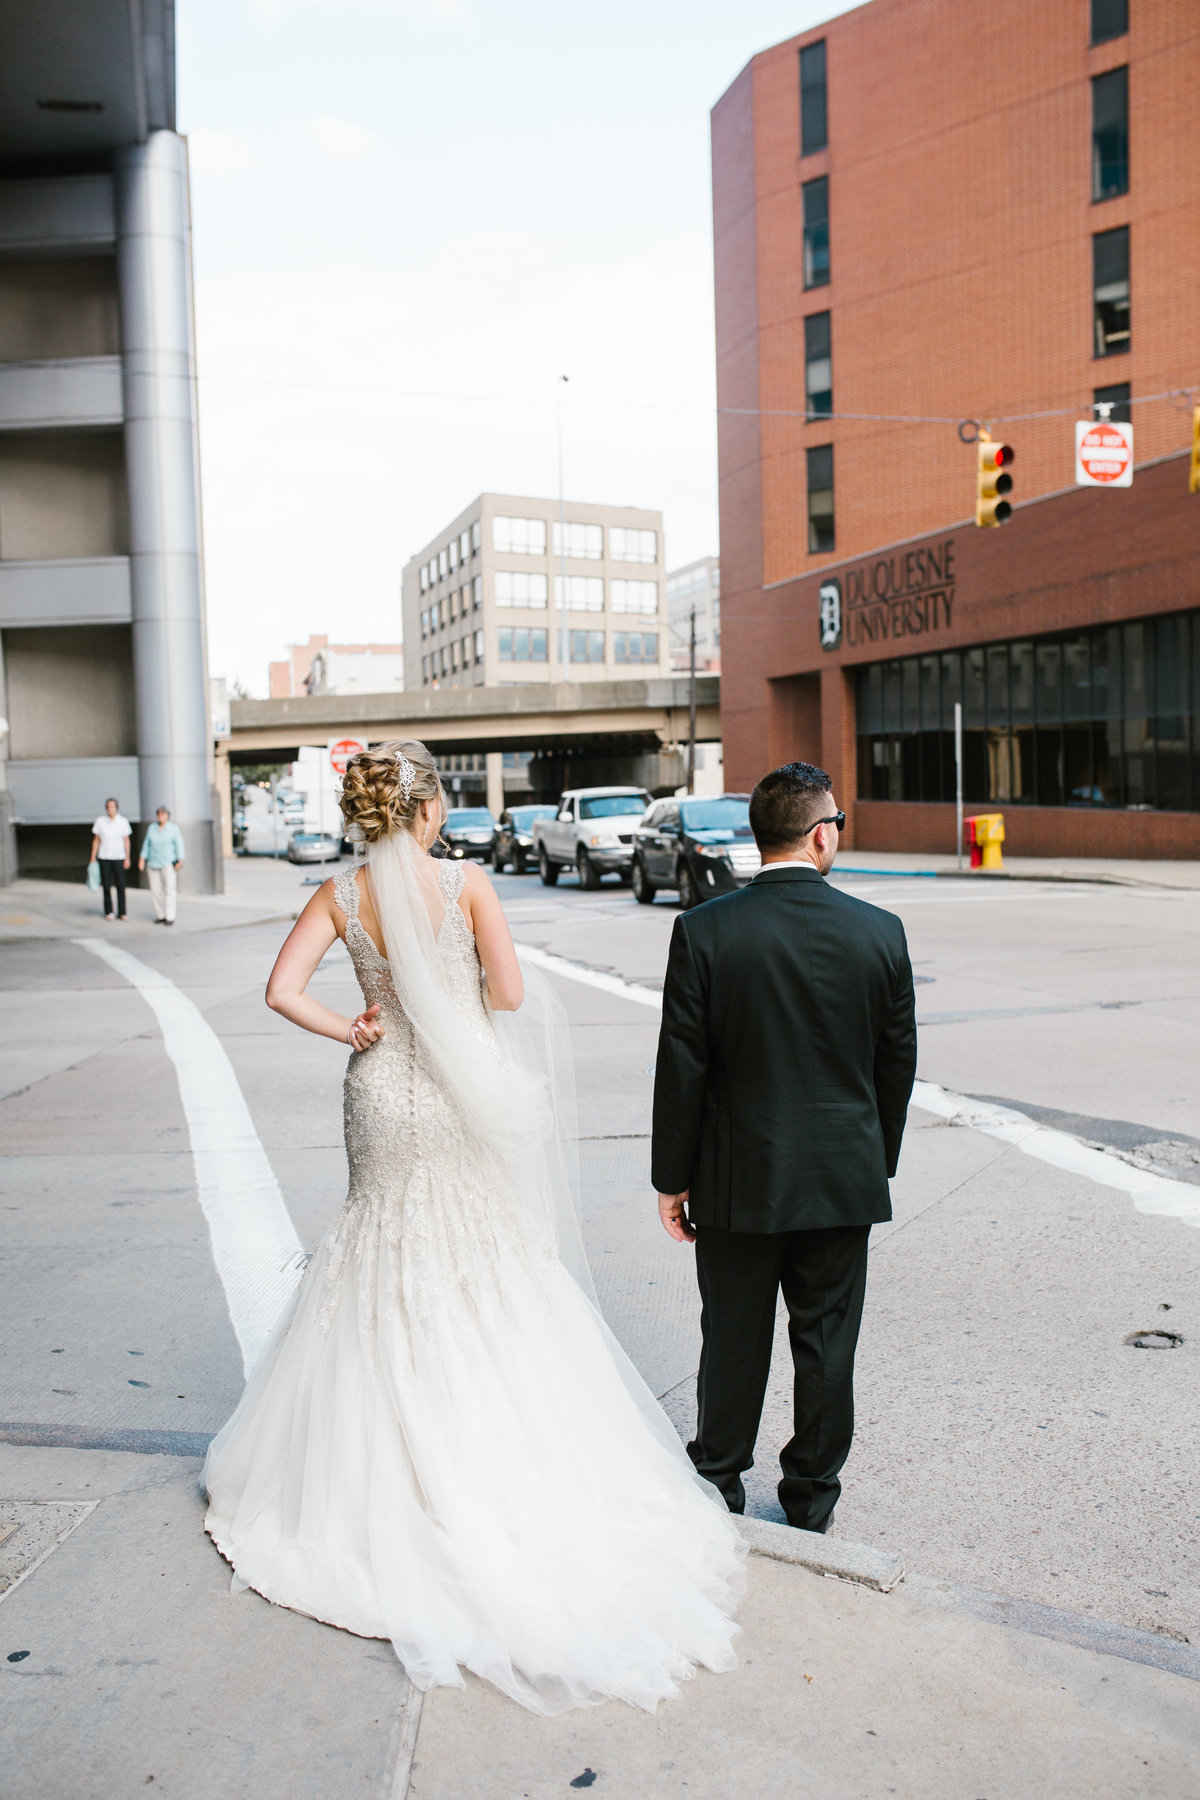 Downtown Pgh wedding photos-7